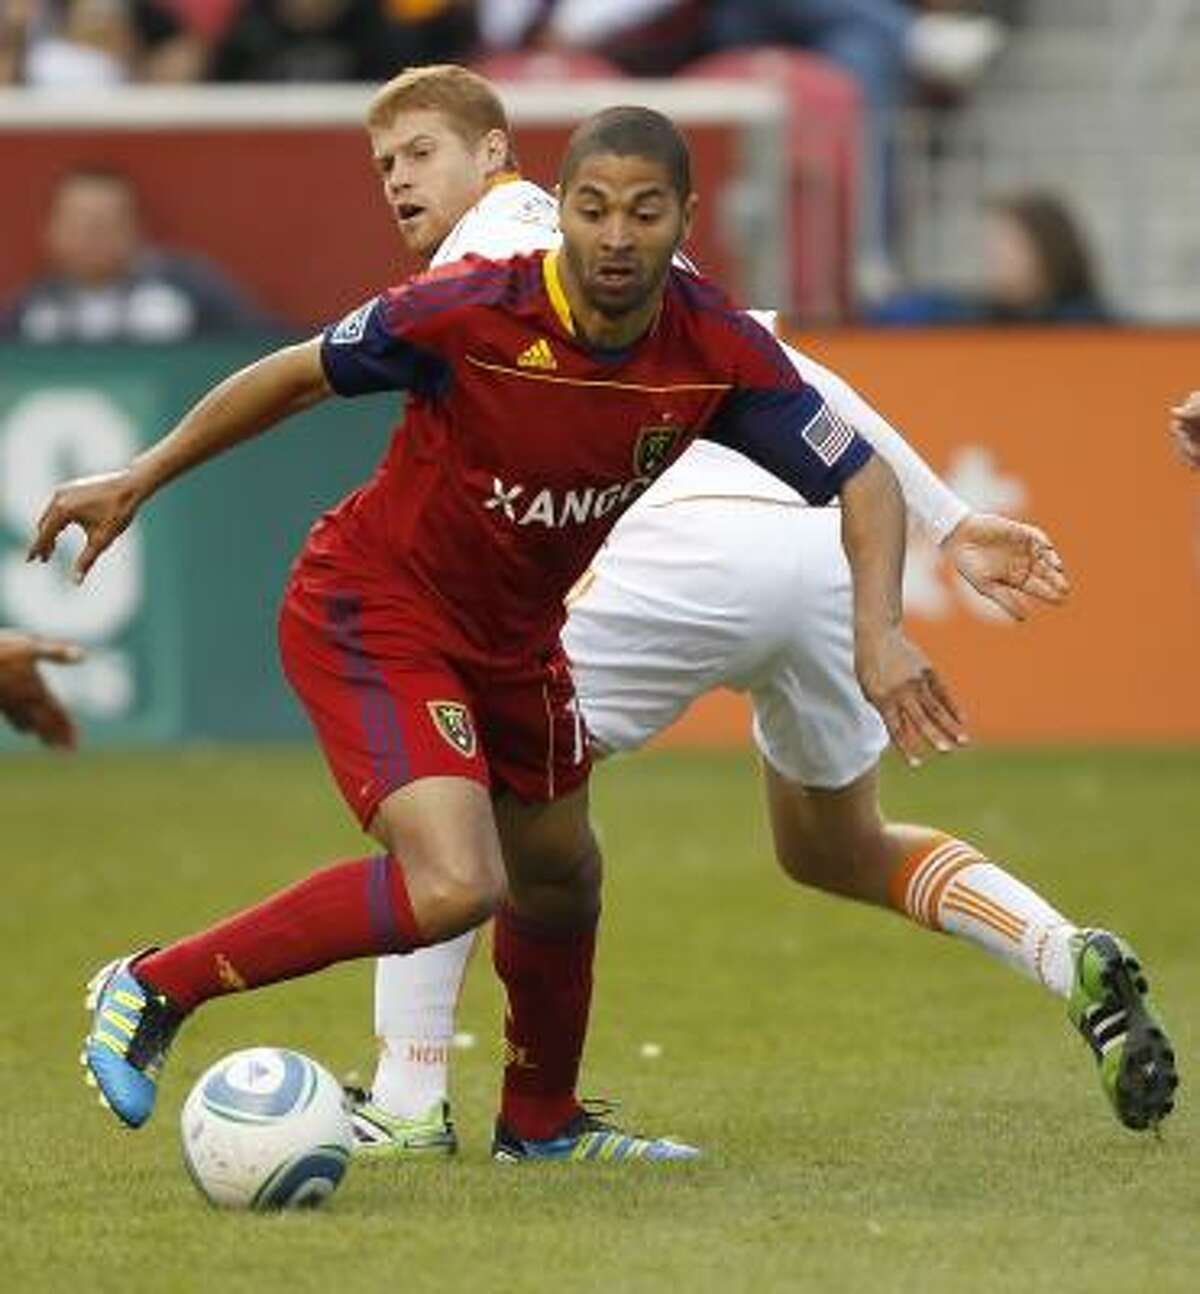 Real Salt Lake's Alvaro Saborio, front, takes the ball from Dynamo defender Andrew Hainault.